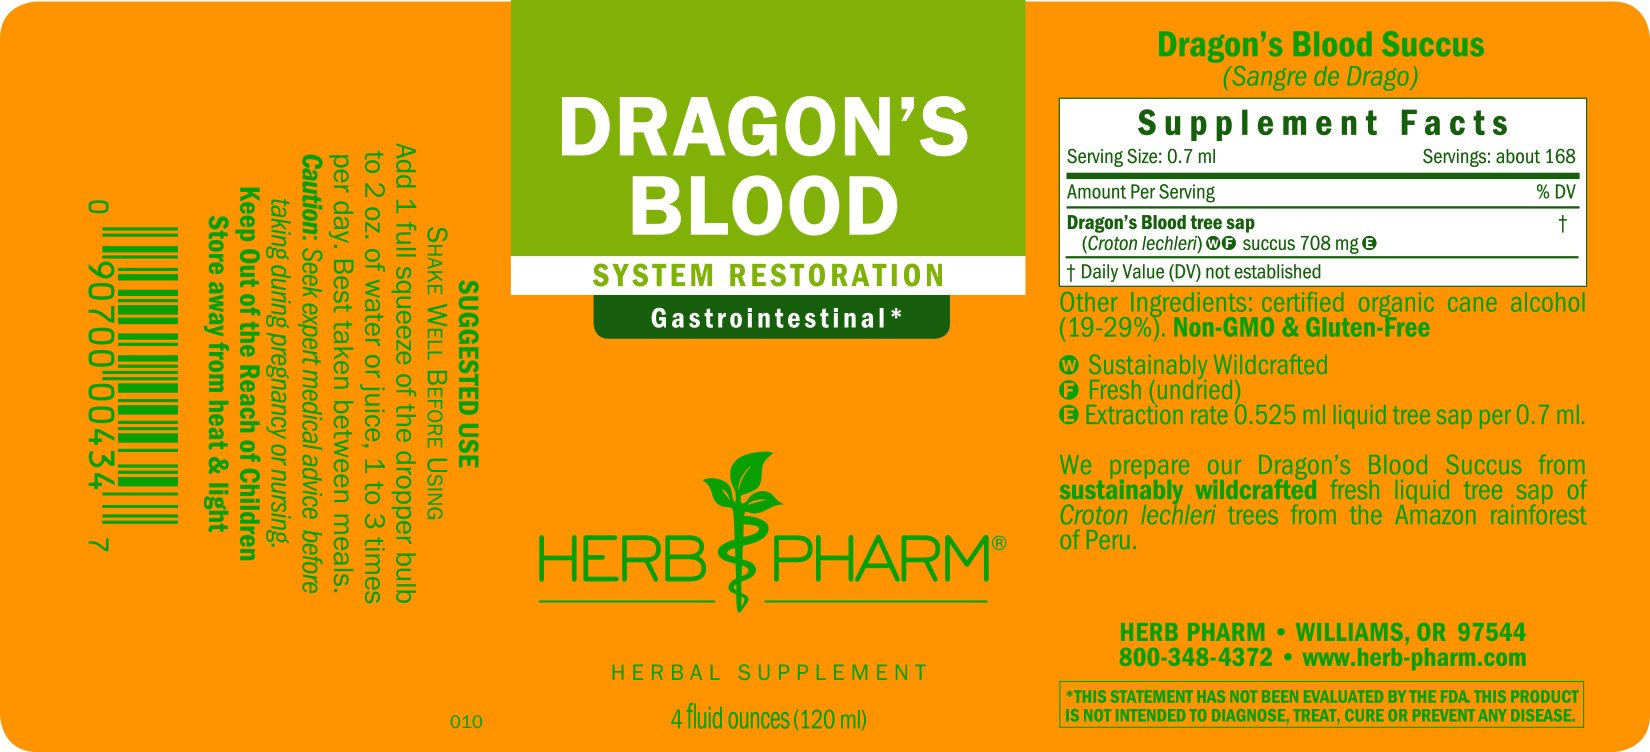 Herb Pharm Dragon's Blood (Sangre de Drago) Liquid Tree Sap for Digestive Support - 4 Ounce by Herb Pharm (Image #2)